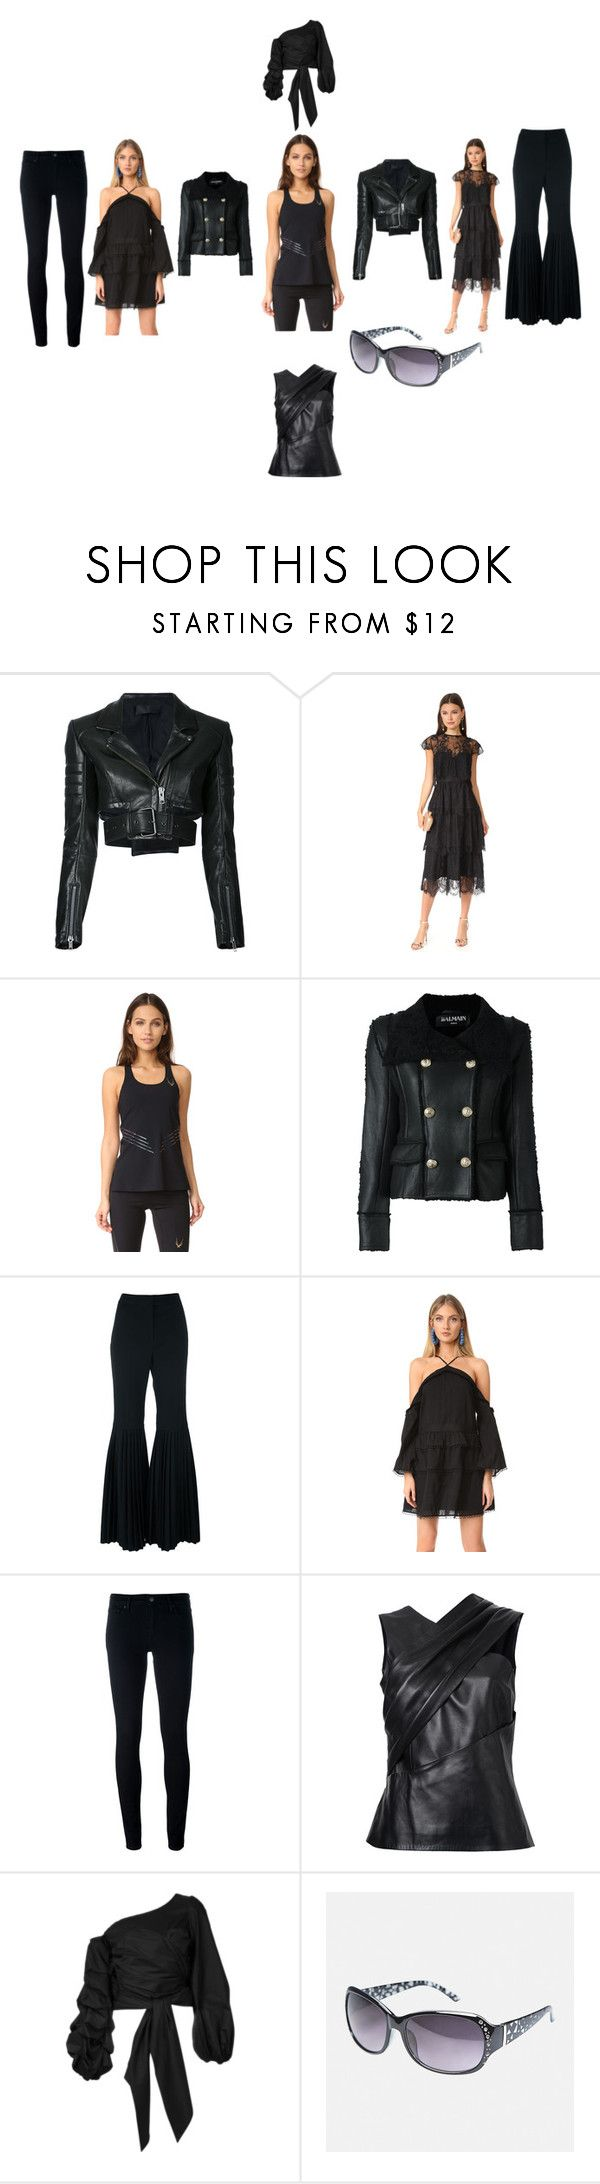 """BLACK DAY"" by ramakumari ❤ liked on Polyvore featuring Haider Ackermann, Parker, Lucas Hugh, Balmain, STELLA McCARTNEY, Stevie May, Levi's, Thierry Mugler, Johanna Ortiz and Avenue"